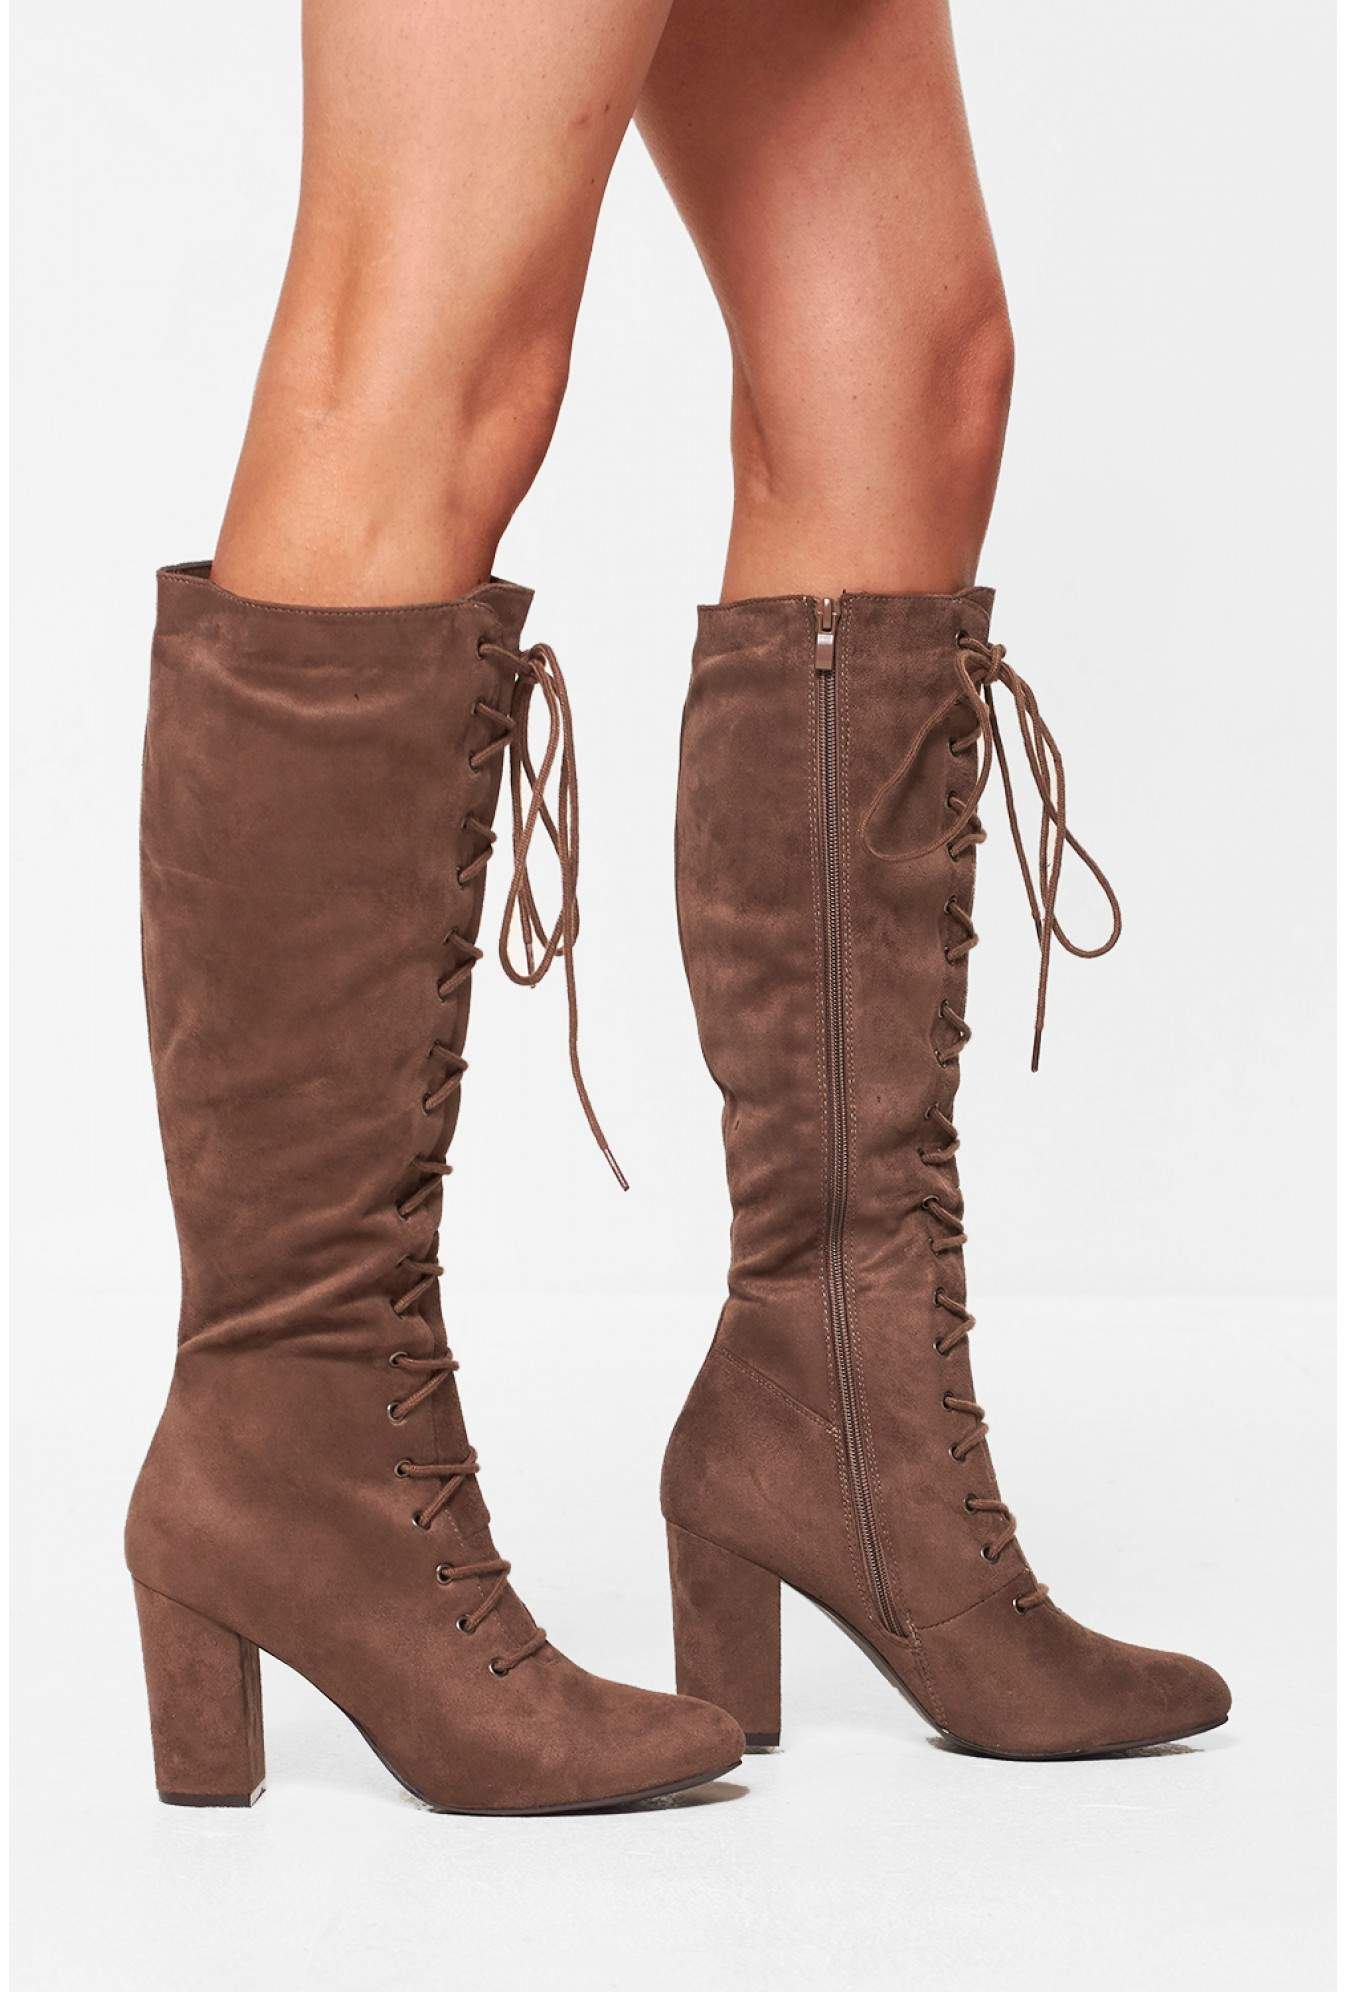 475c460b7c3 No Doubt Amanda Lace Up Knee High Boots in Taupe